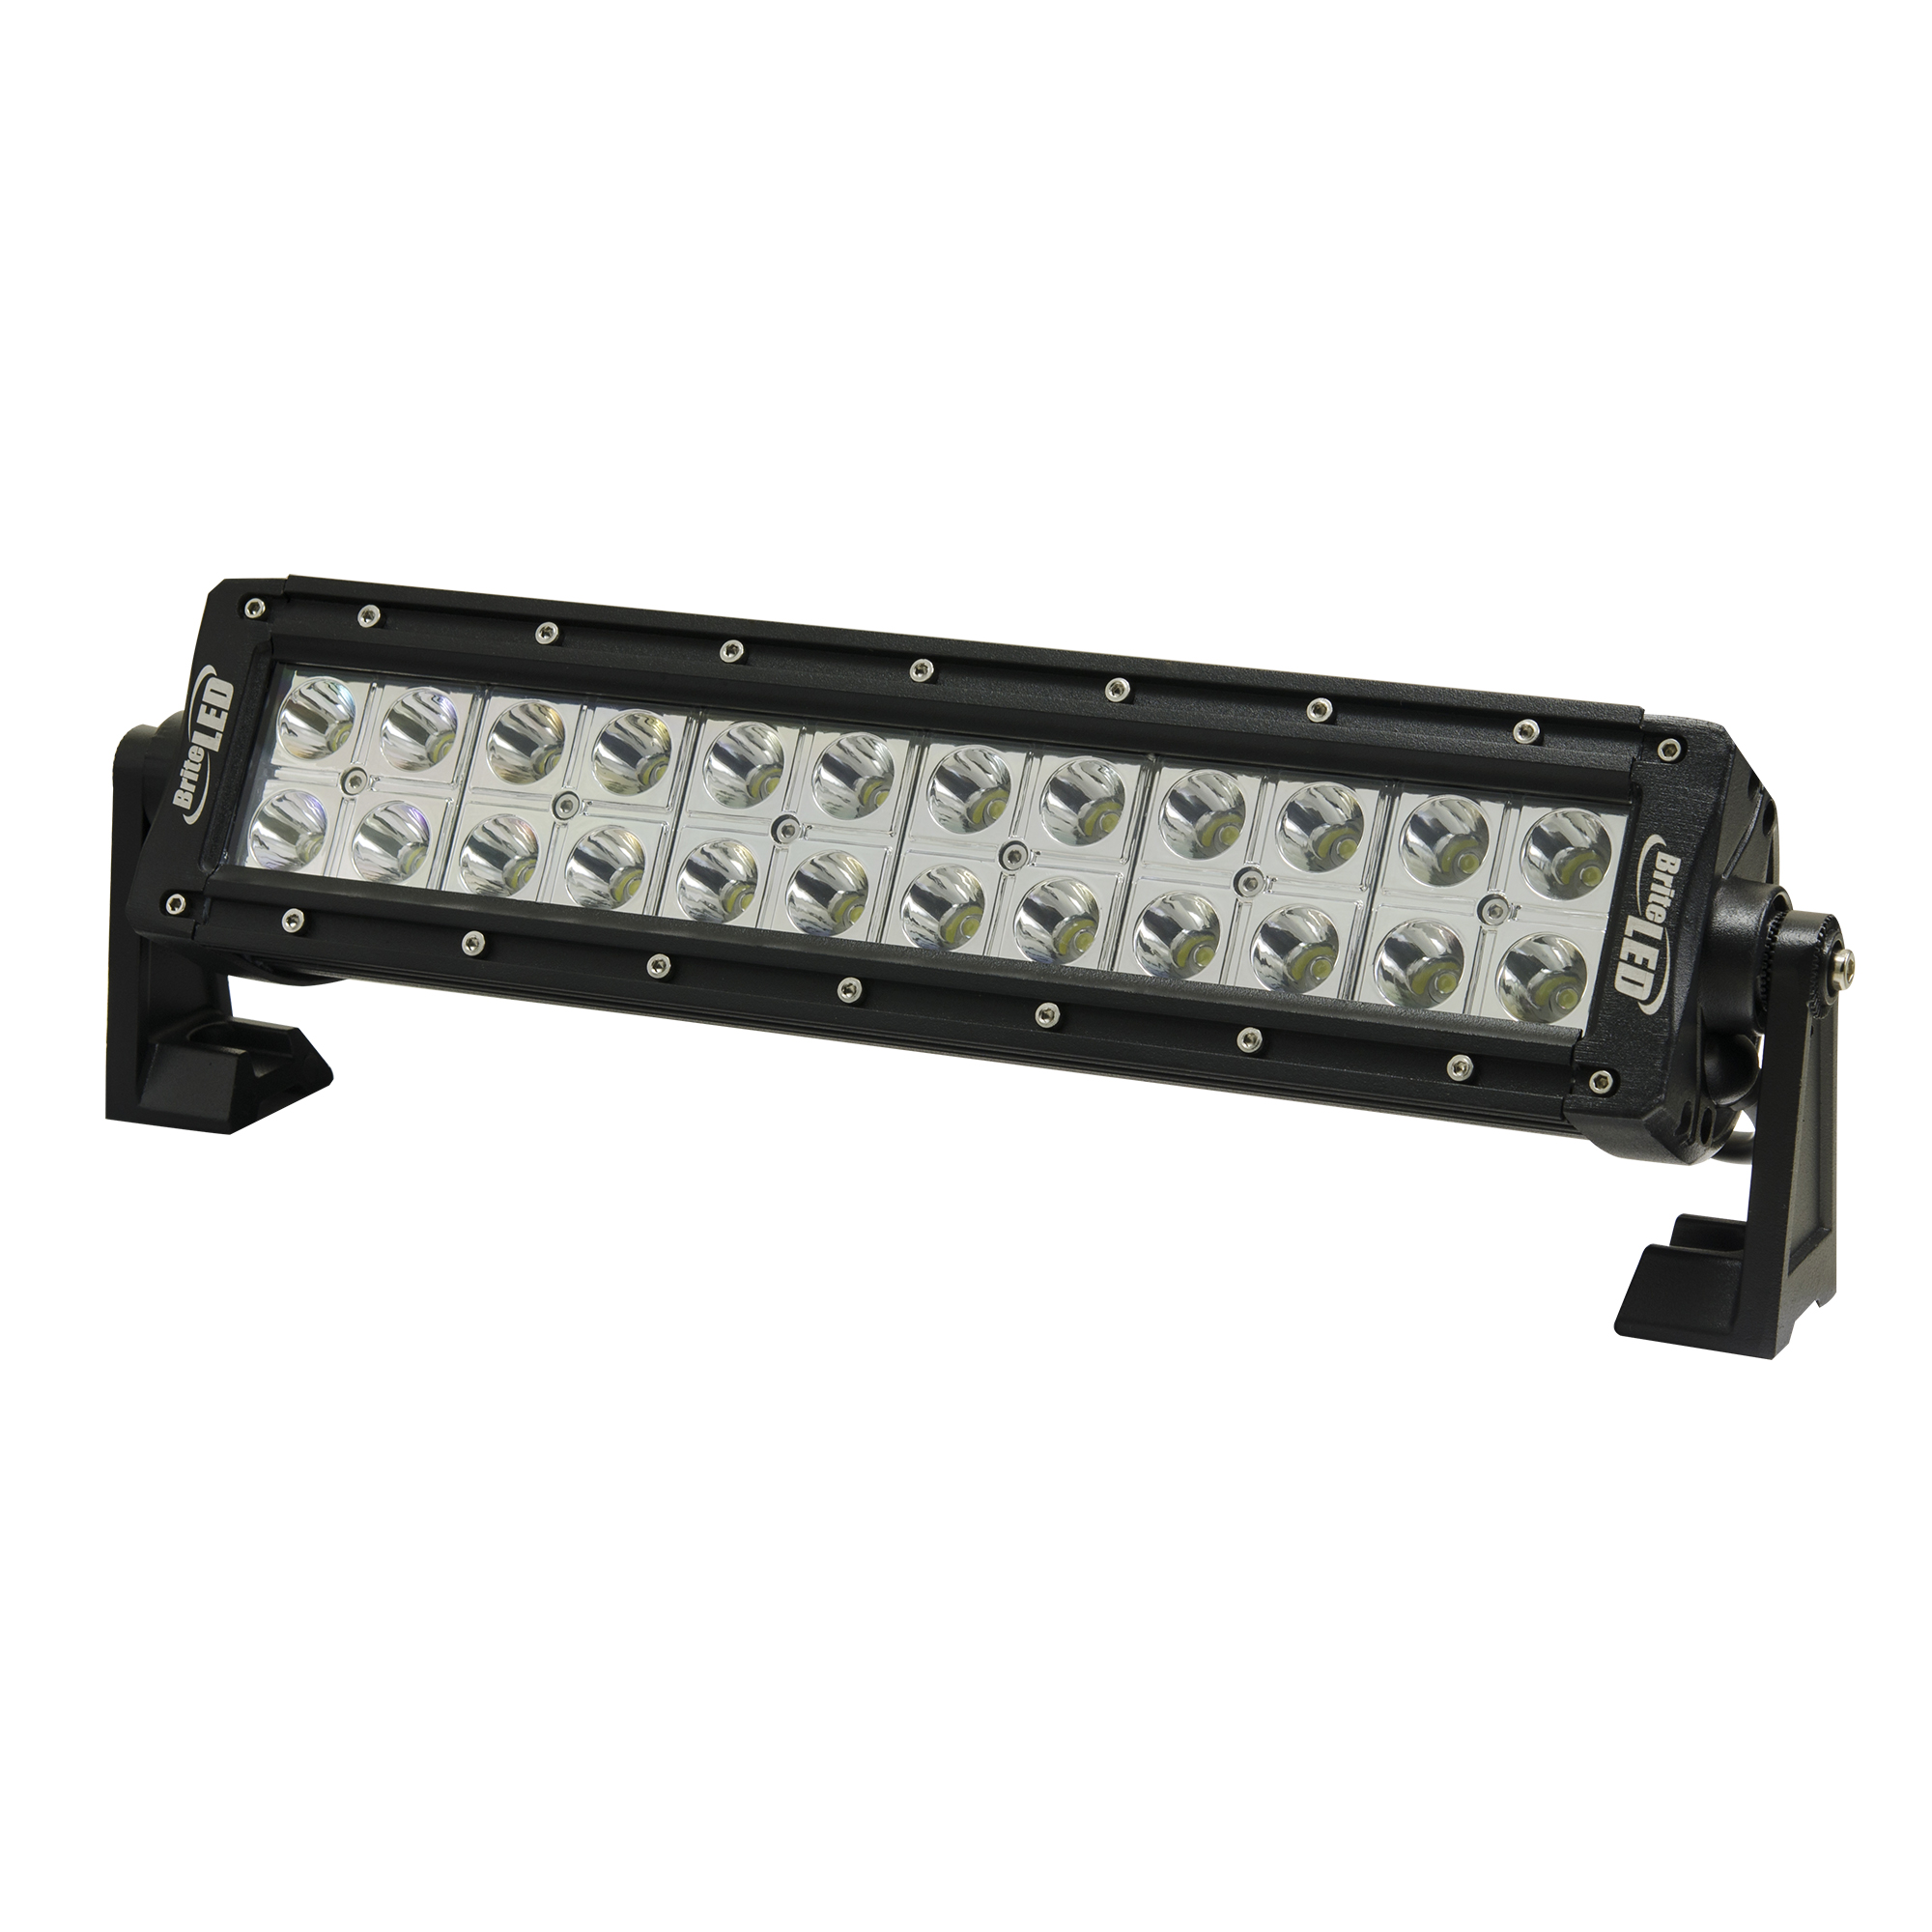 Led Bar Light on led tube, led lights for home, led ceiling lights product, led bulbs, led drivers, led lite panel, led flashlights, high power led, led floodlights, led strips product, led head lights, led modules, led street lights, led rope lights, led panel lights product, led can lights, led par lights, smd led, led running lights, led headlight bar, led downlights product, led spotlights, led tubes, led tube lights, led lights for drinks, led cable lights, led lighting, led driving lights, led light bulbs, led lamps, led board, led spotlight, led displays,